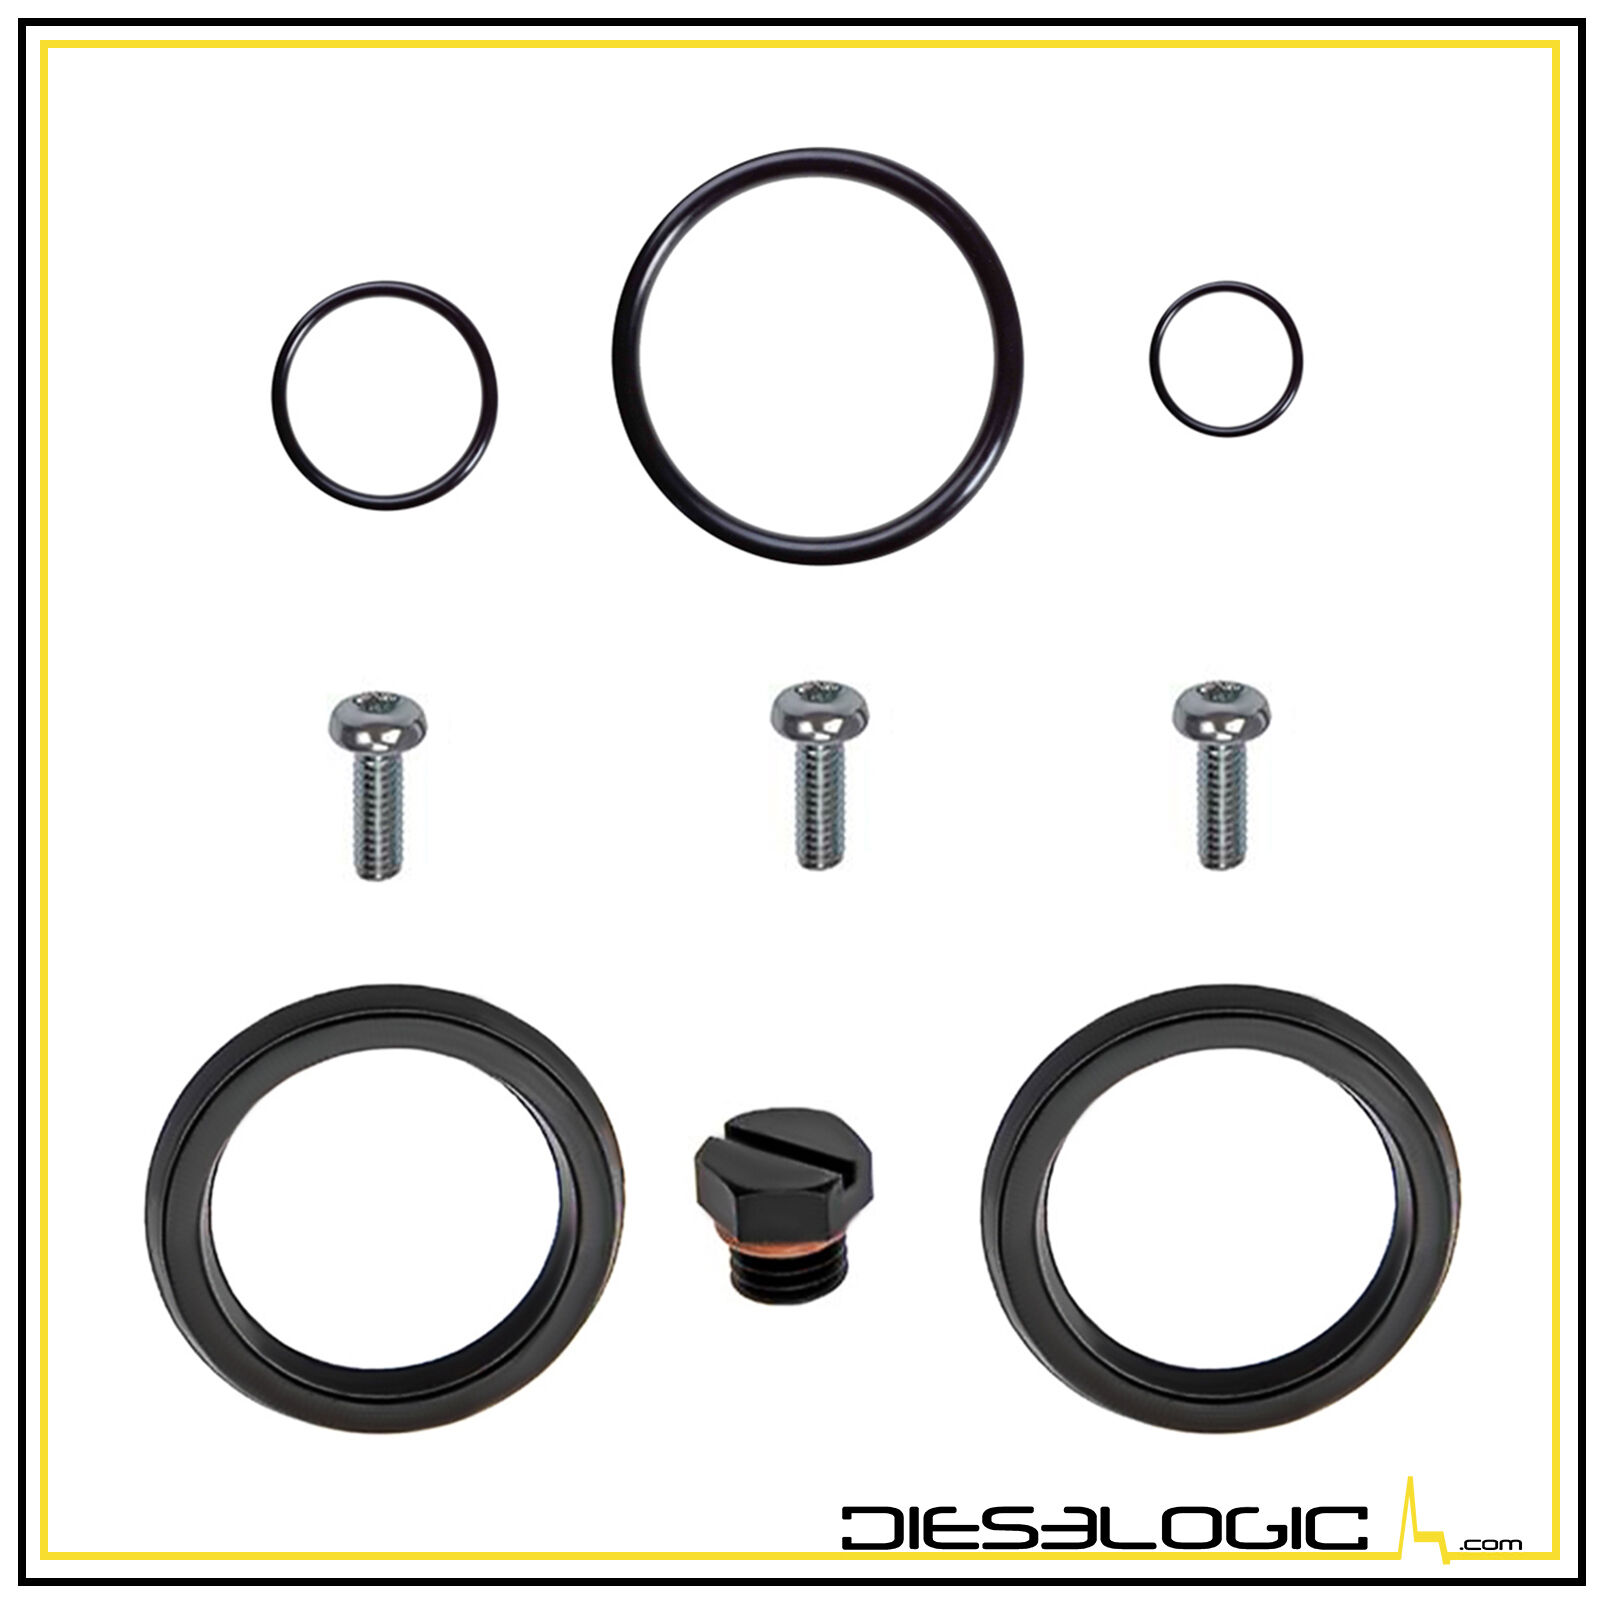 2001-2012 LB7 6.6L FUEL PRIMER HOUSING SEAL KIT FOR CHEVY